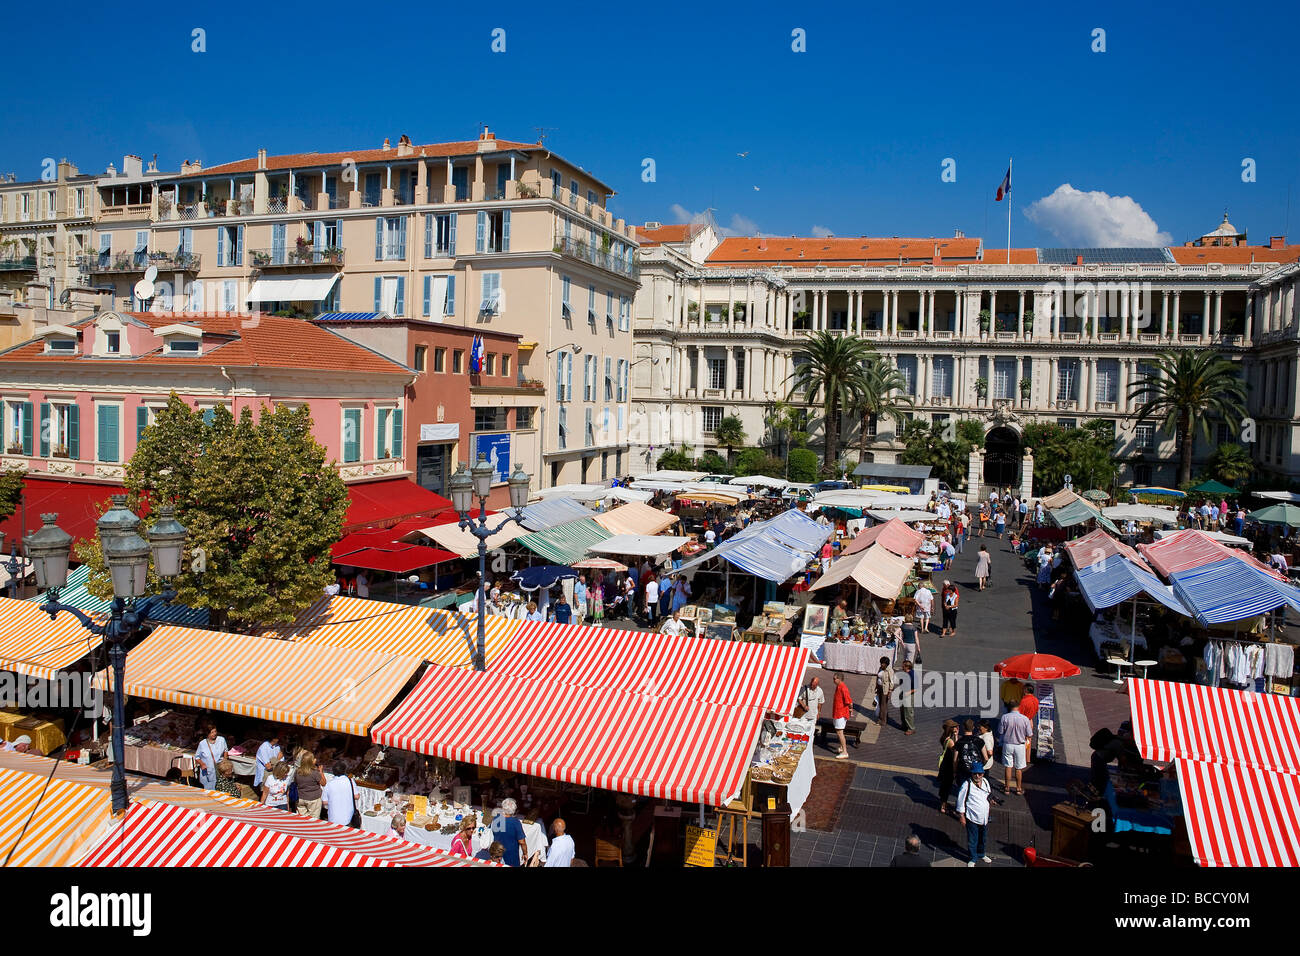 france alpes maritimes nice old town cours saleya and antiques stock photo royalty free. Black Bedroom Furniture Sets. Home Design Ideas